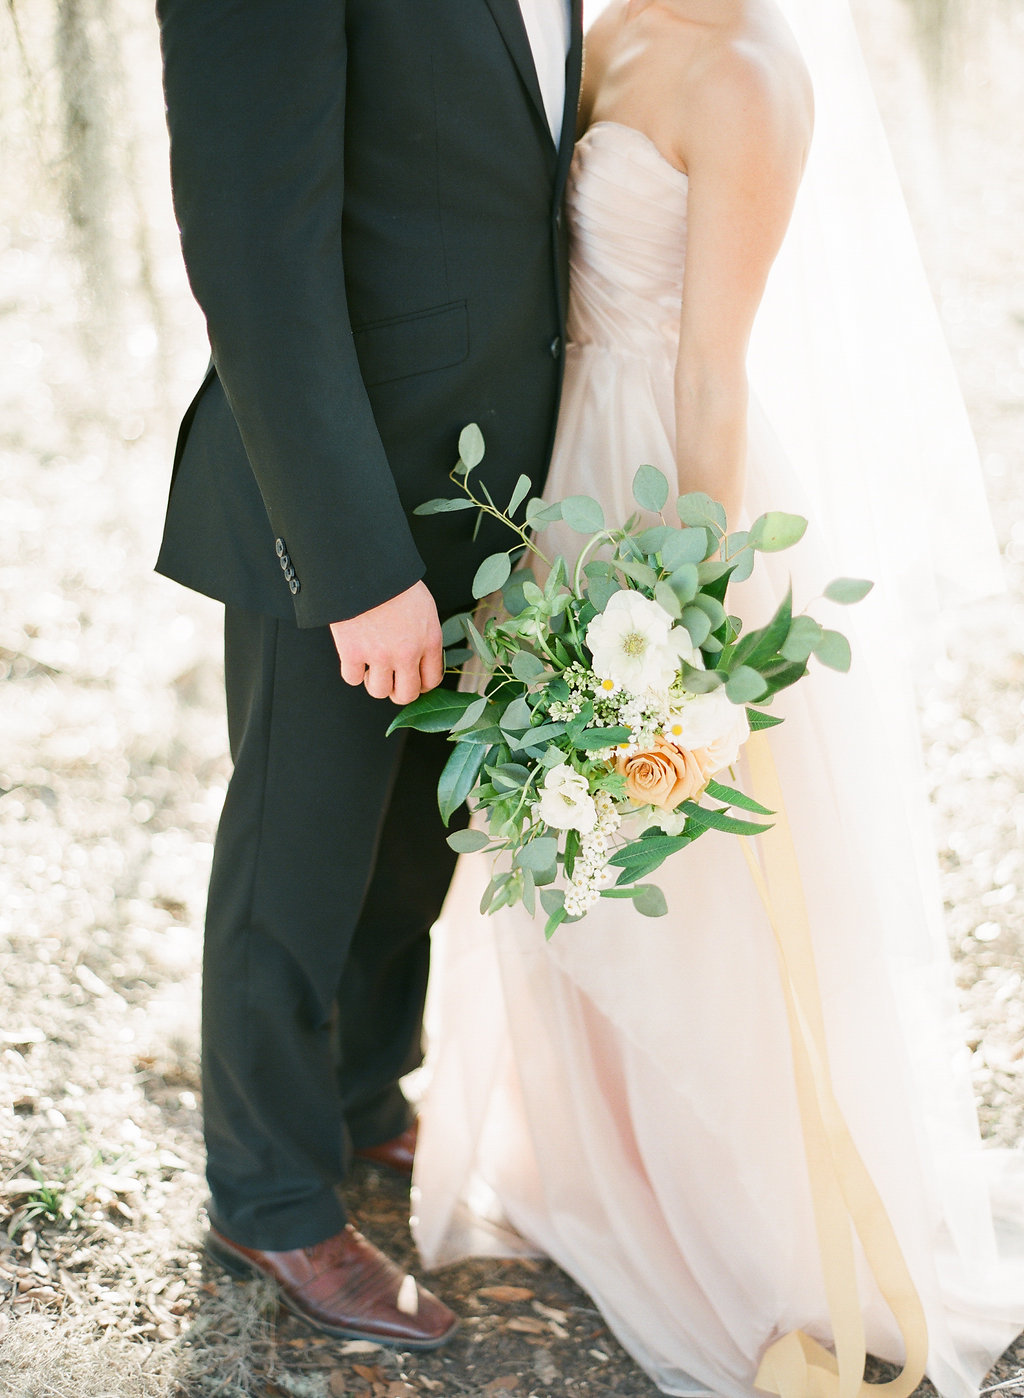 the-happy-bloom-design-studio-south-wormsloe-plantation-wedding-sarah-seven-blushing-ivory-and-beau-bridal-boutique-savannah-wedding-dresses-savannah-bridal-boutique-savannah-weddings-savannah-wedding-planner-savannah-event-planner-3.jpg